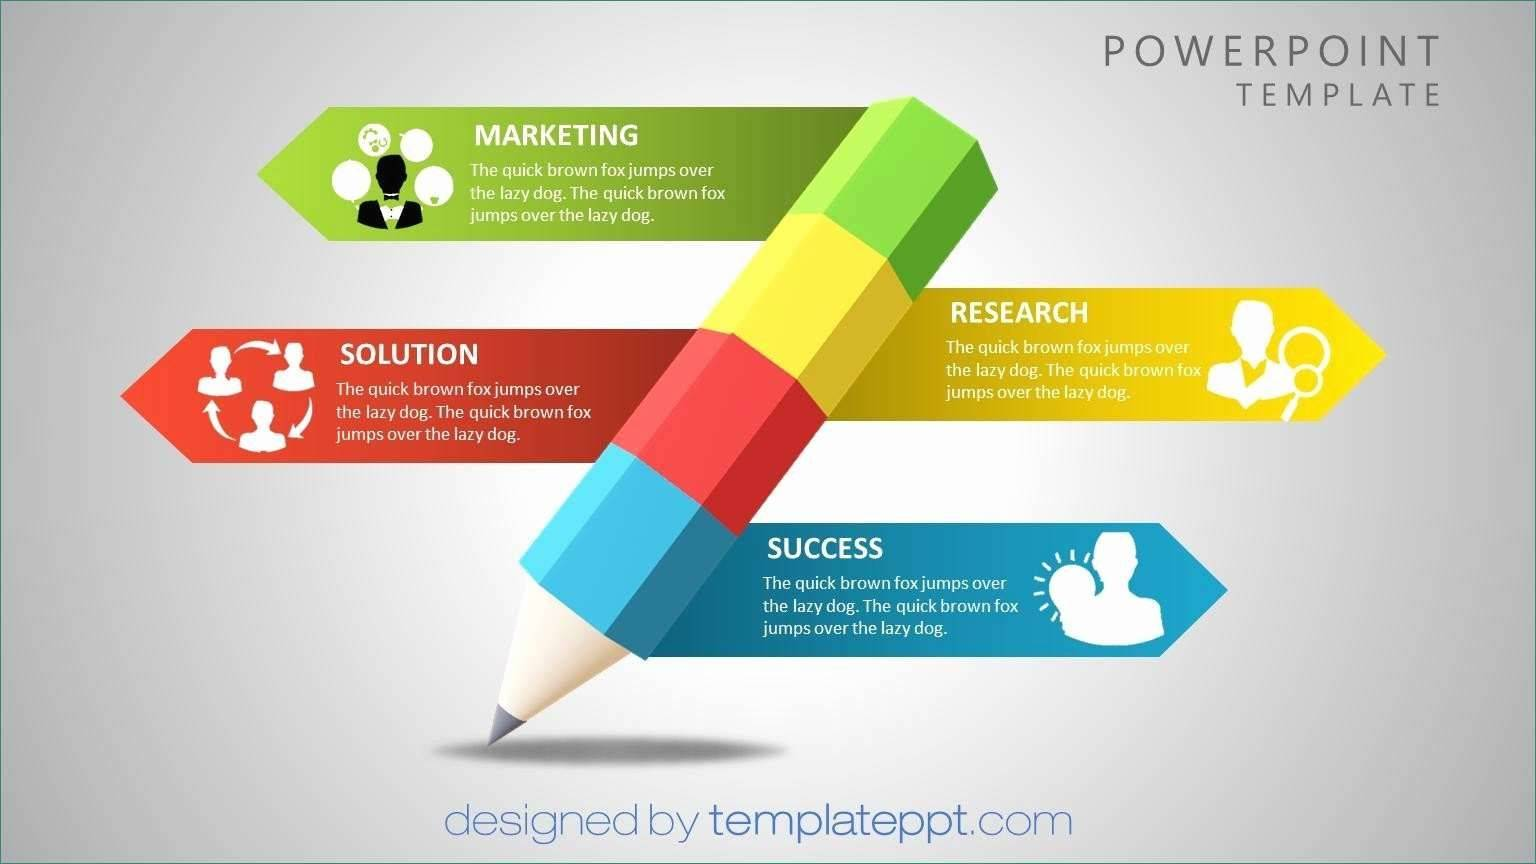 Microsoft Office Animated Powerpoint Templates